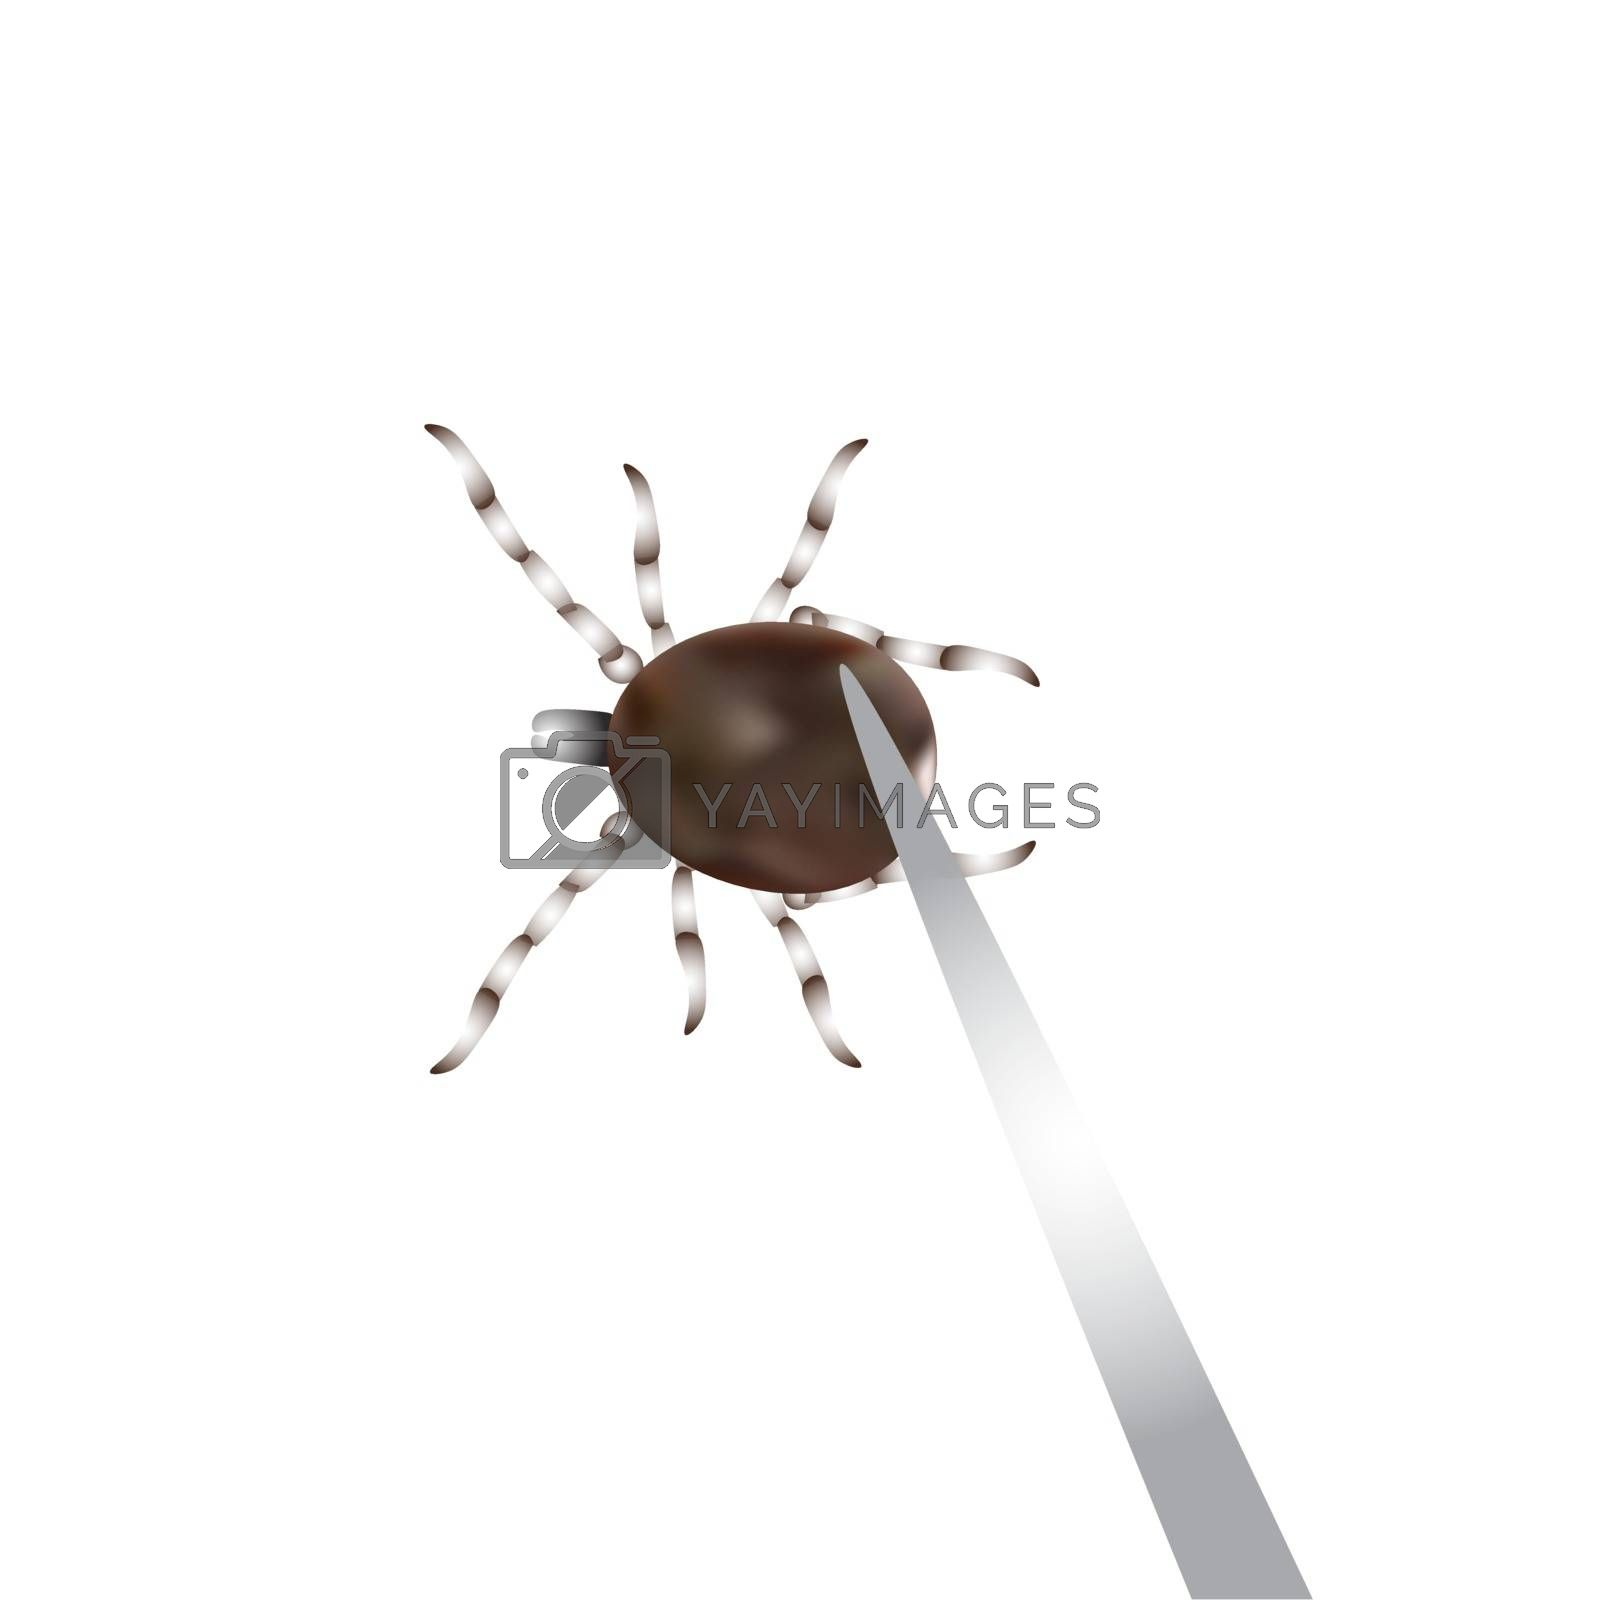 Remove mite with special tools. Spider mites. Mite parasites. Vector illustration